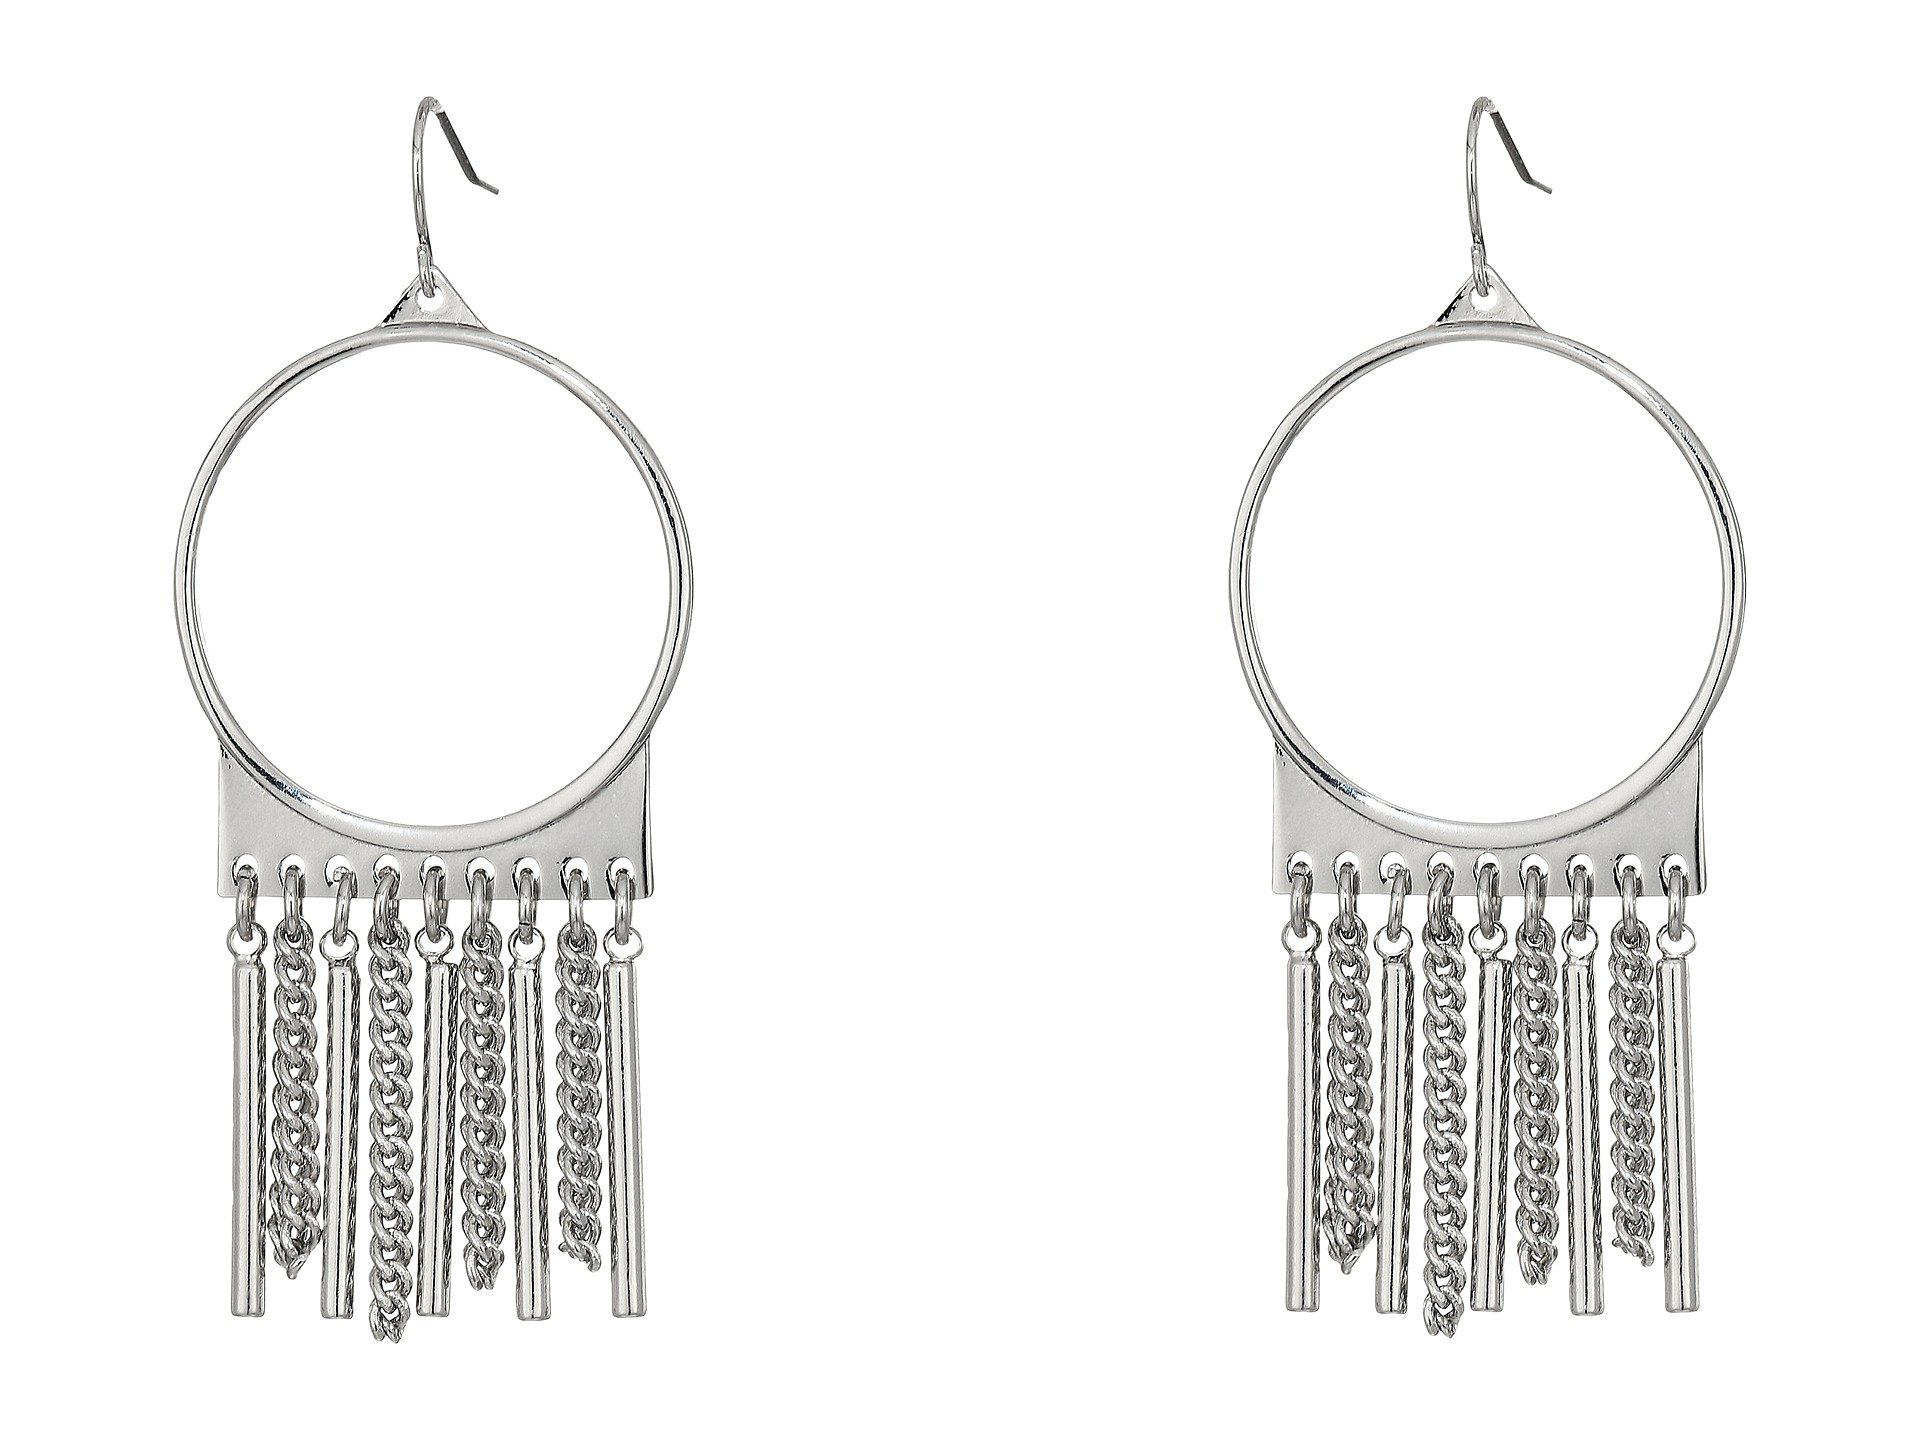 Pendientes para Mujer Steve Madden Ring with Chain Fringe Fish Hook Earrings  + Steve Madden en VeoyCompro.net